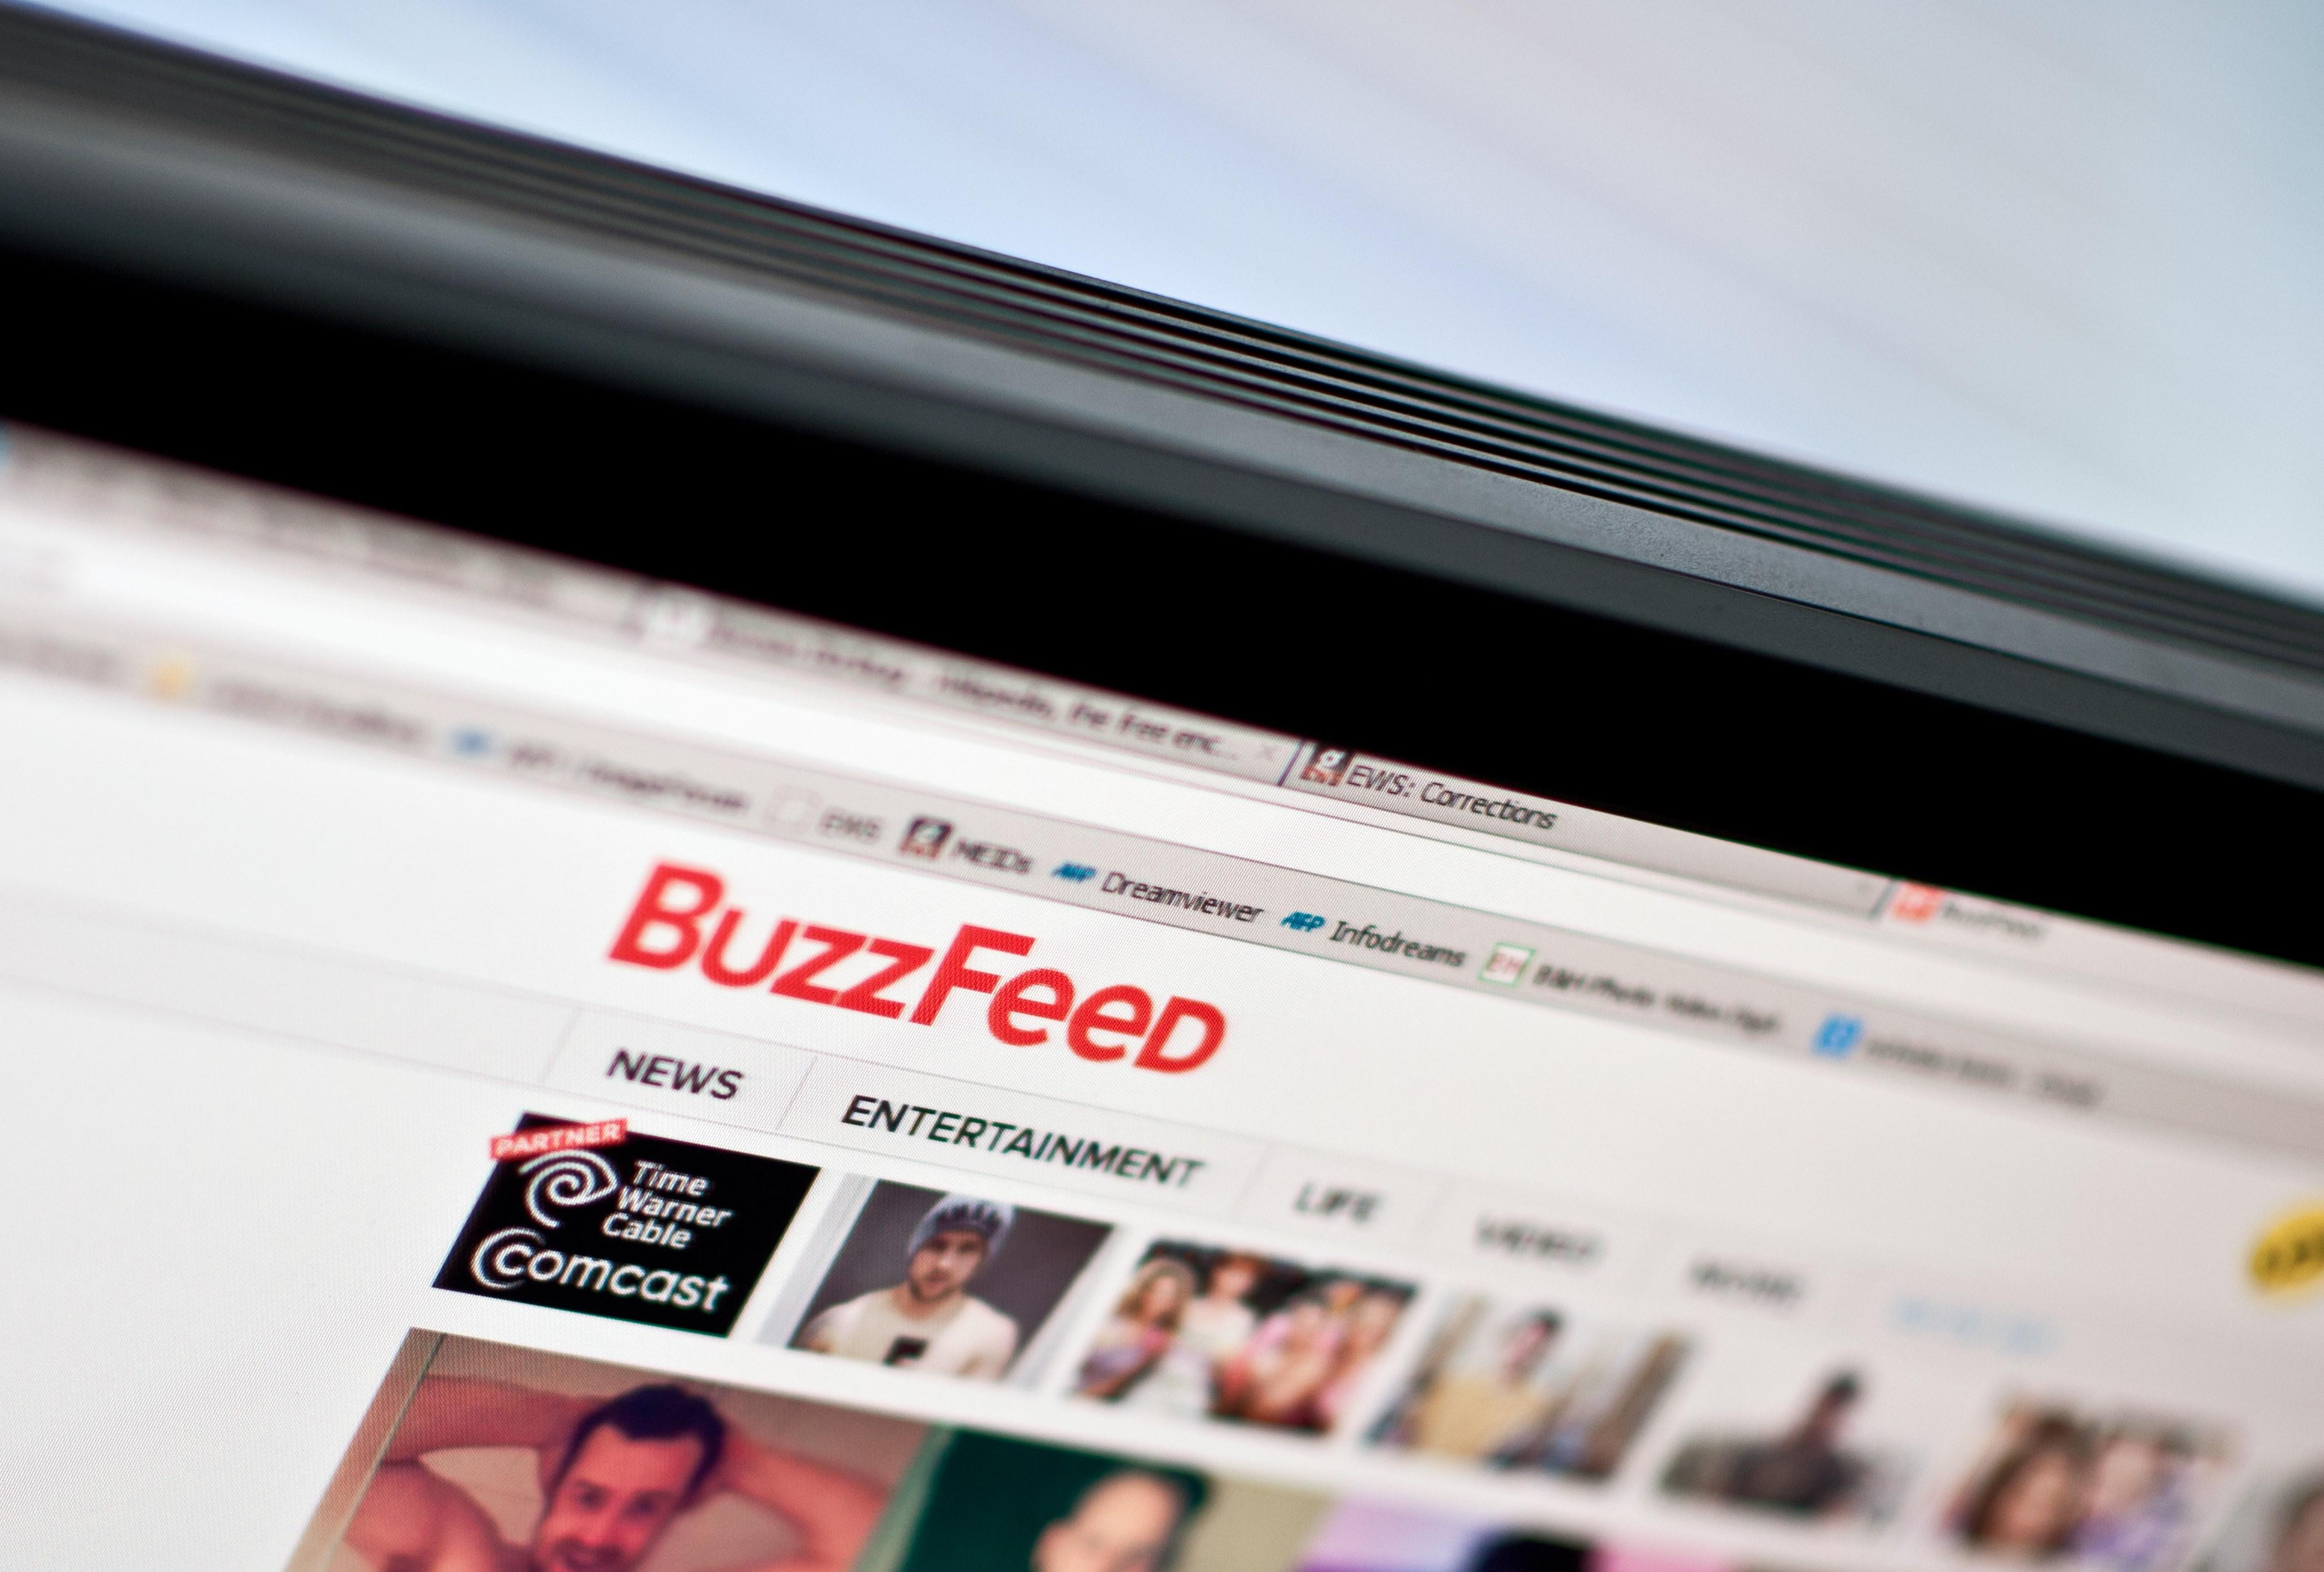 Buzzfeed Donald Trump Republican National Committee